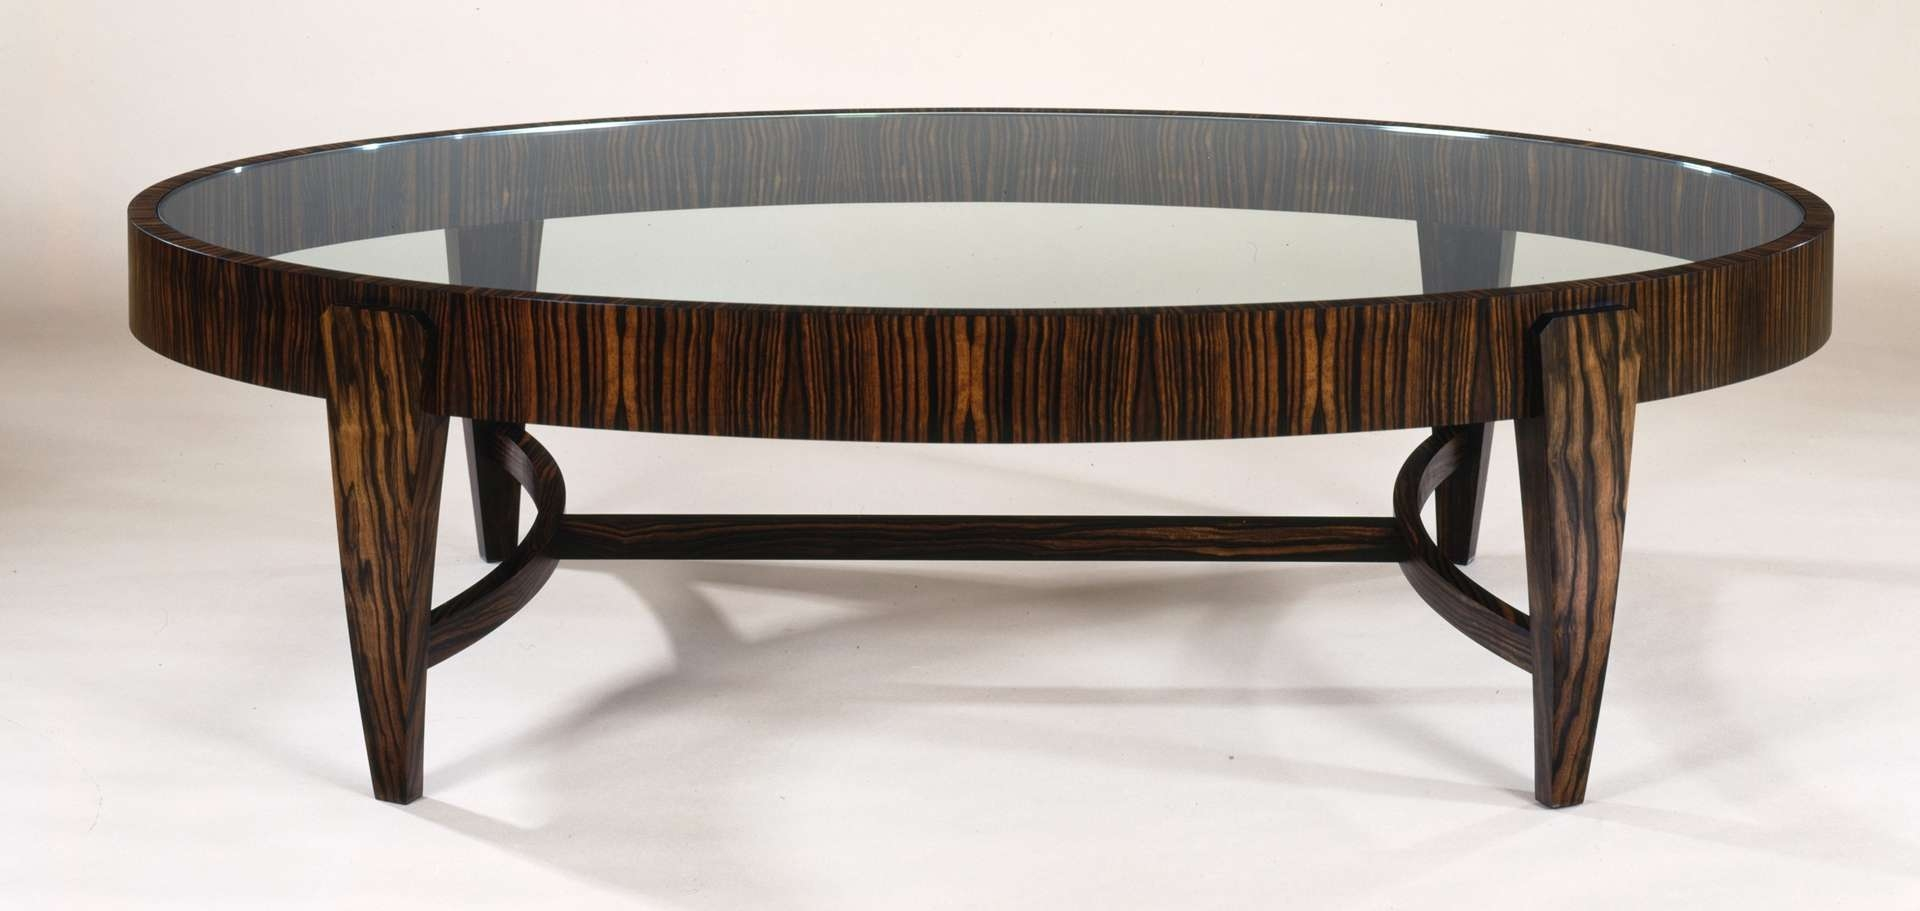 Oval Coffee Table Contemporary Coffee Tables For Small Spaces Regarding Favorite Oval Wood Coffee Tables (View 16 of 20)